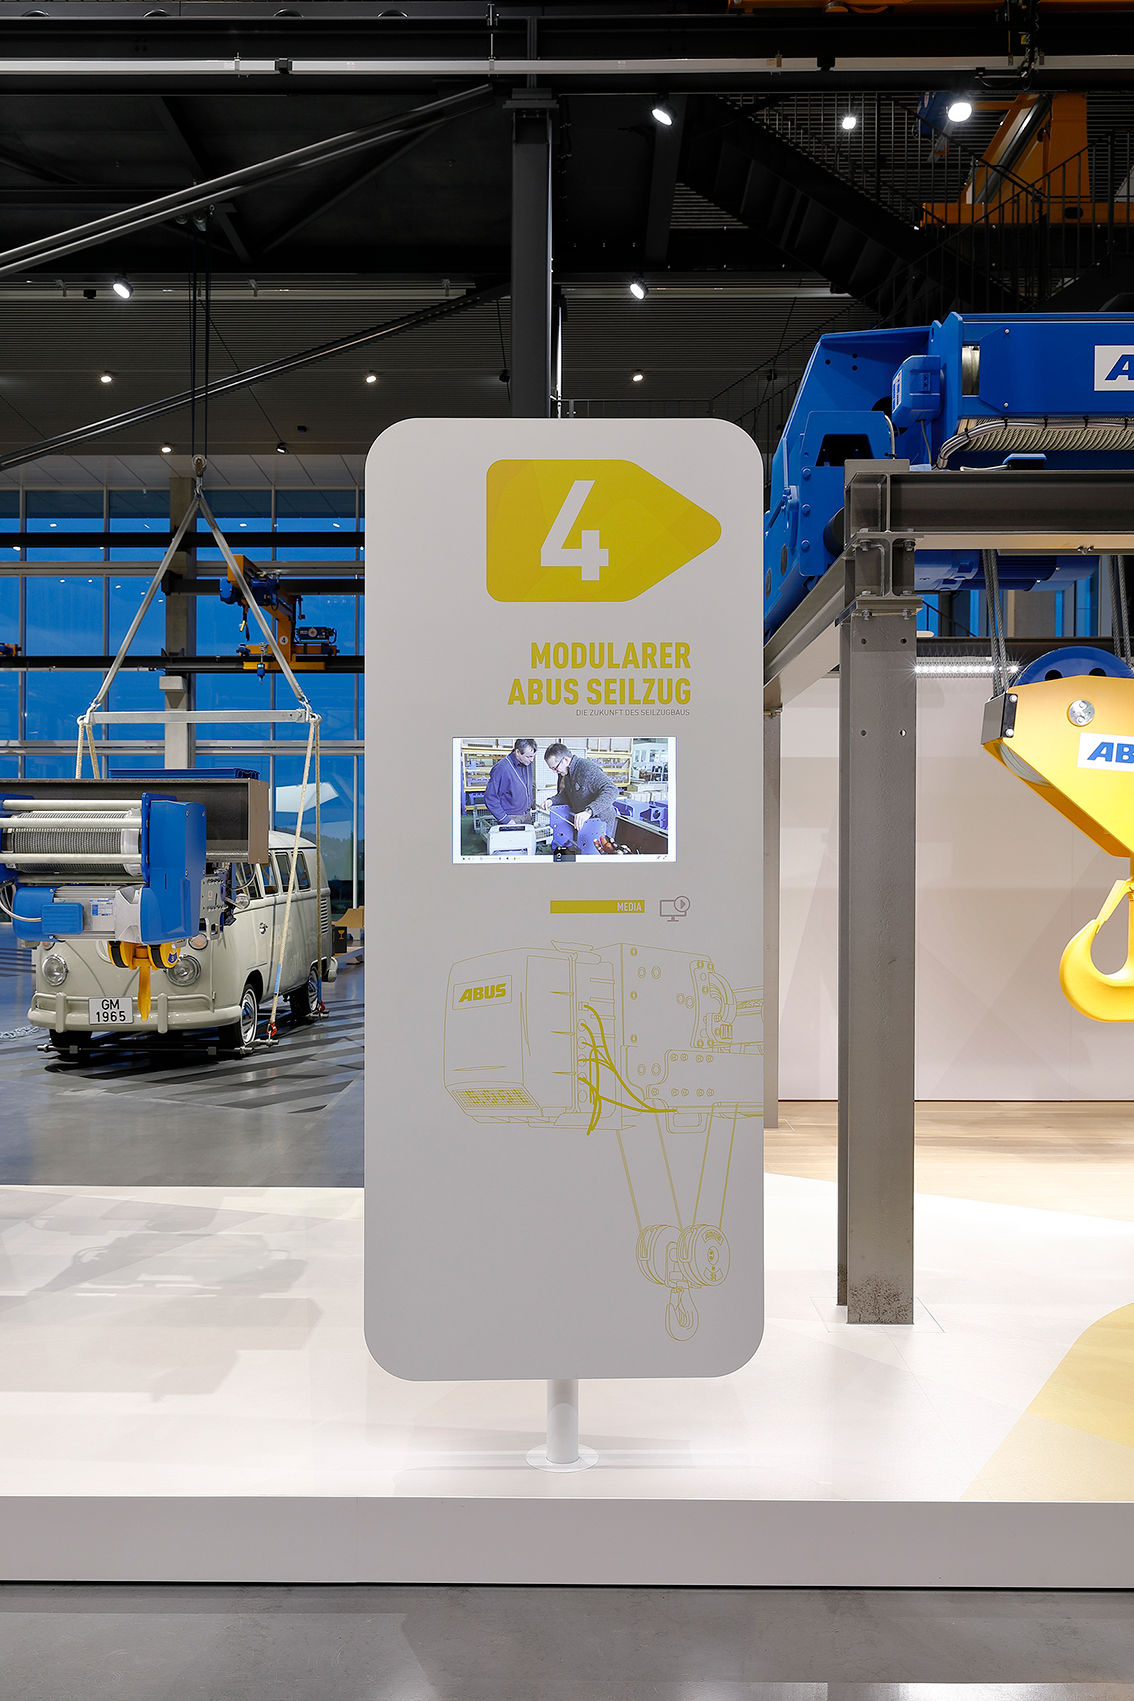 The product world offers an overview of Abus products in various stations. A special highlight is a real crane system, which allows a ride over the exhibition area at an altitude of eight metres. At the heart of the hall is the centrally arranged communication area, which serves as a platform for lectures and conversations to visitors and employees.